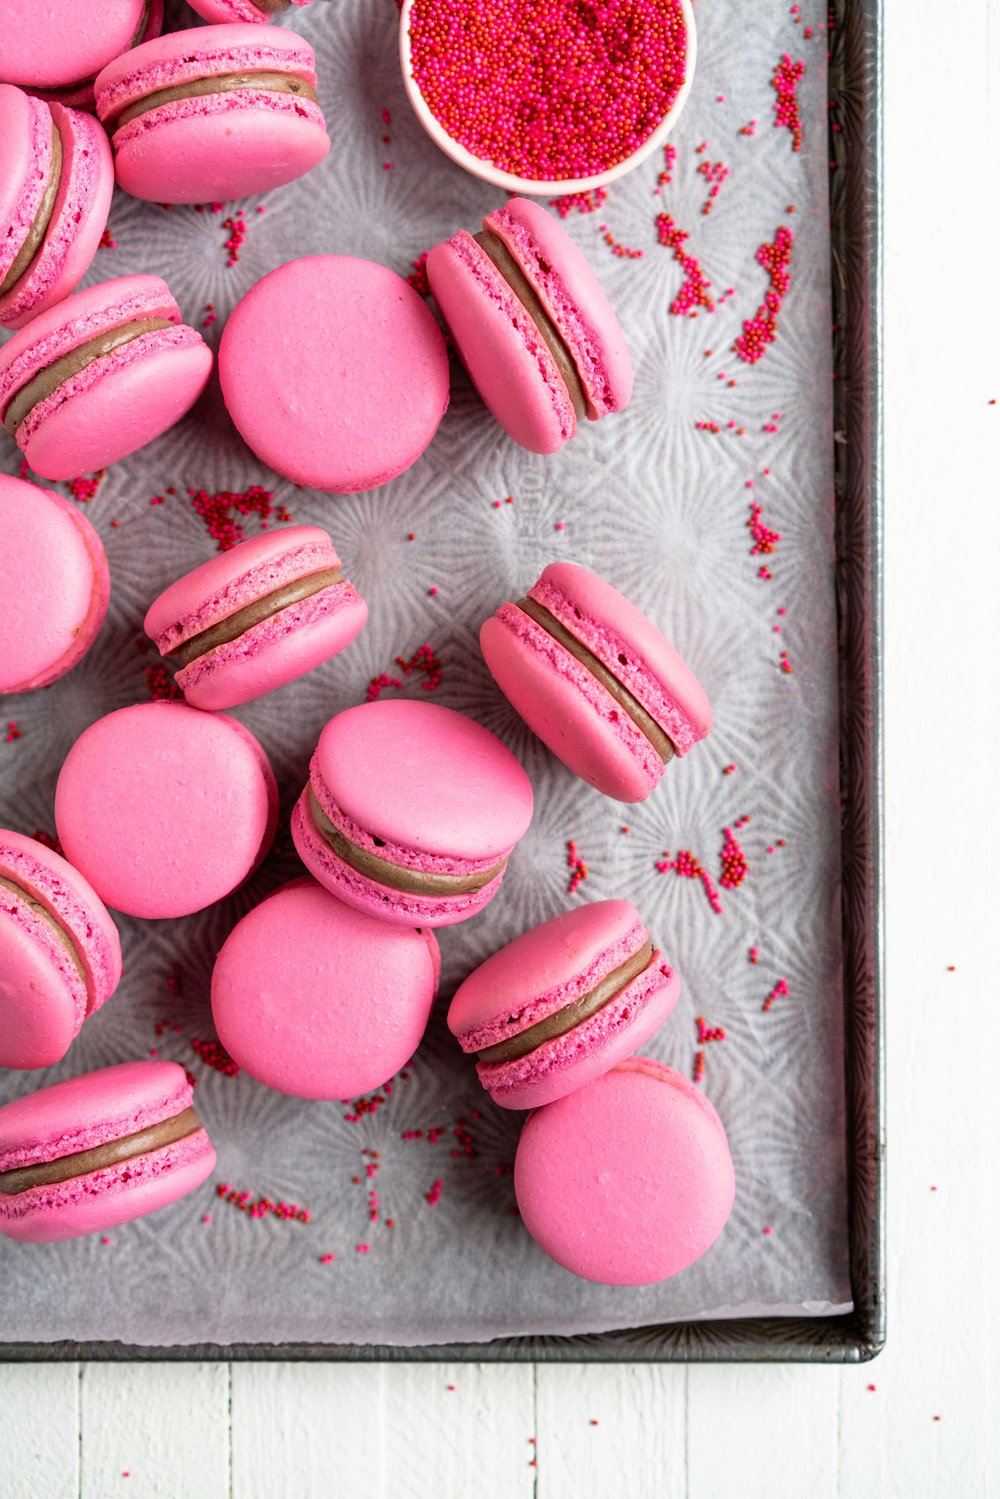 Raspberry and Dark Chocolate Macarons - A classic pink shell, filled with a homemade raspberry quick jam, and a silky Dark chocolate swiss meringue buttercream, deepened with a little black cocoa. These are a classic valentine's day pairing, and would be perfect as a gift, but would also make an amazing anytime treat for a chocolate or berry lover. #frenchmacaron #valentinesmacaron